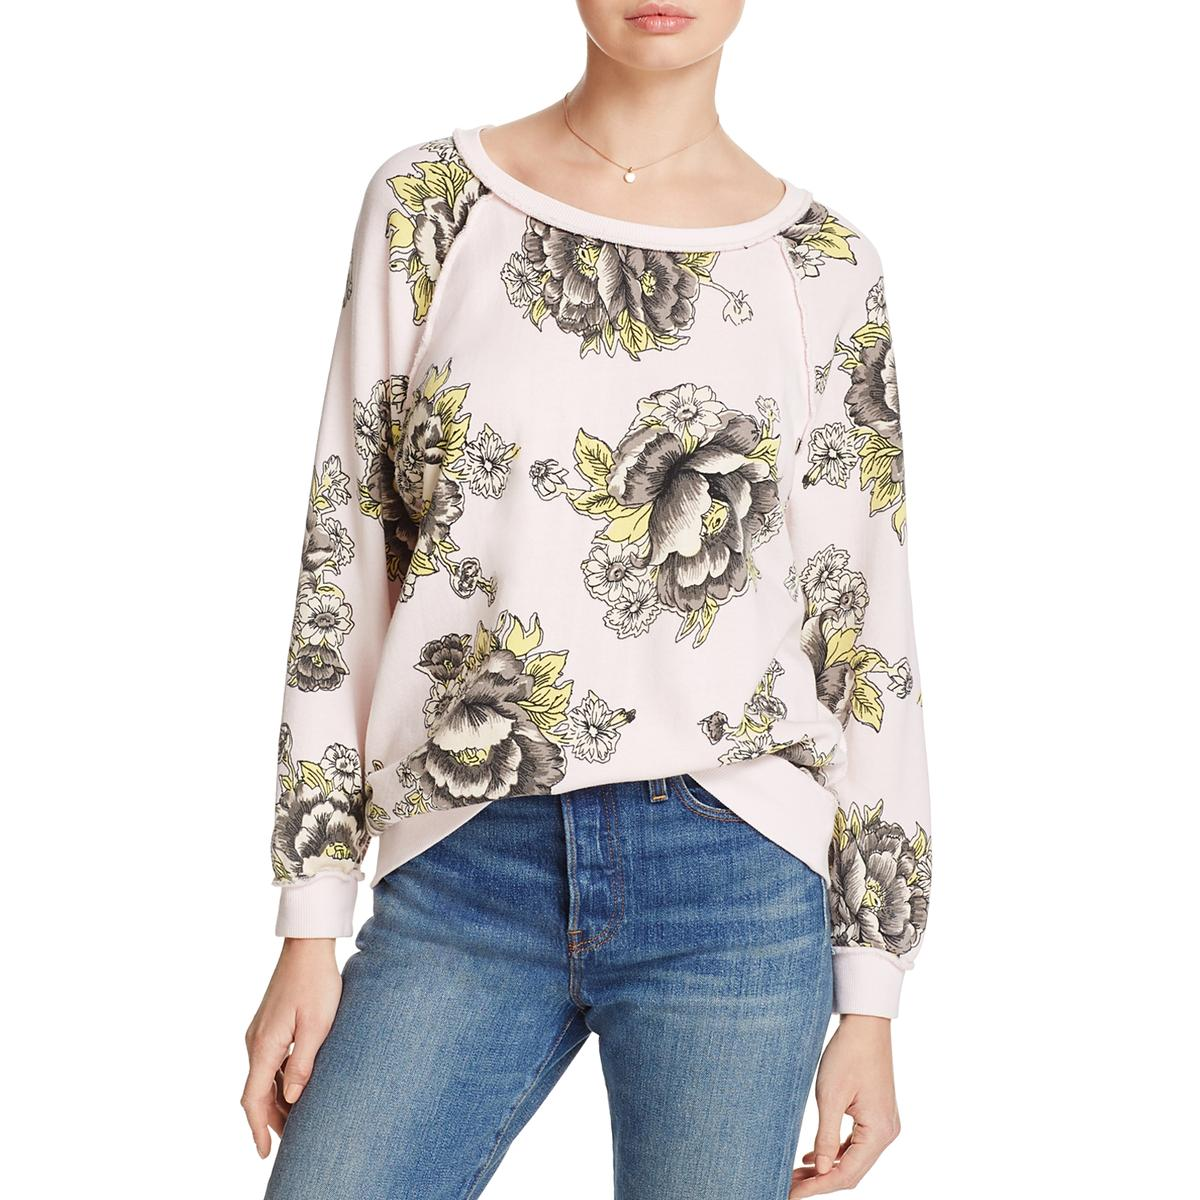 784db2a1fe0 Details about Free People Womens Pink Floral Raglan Casual Sweatshirt Top S  BHFO 8239